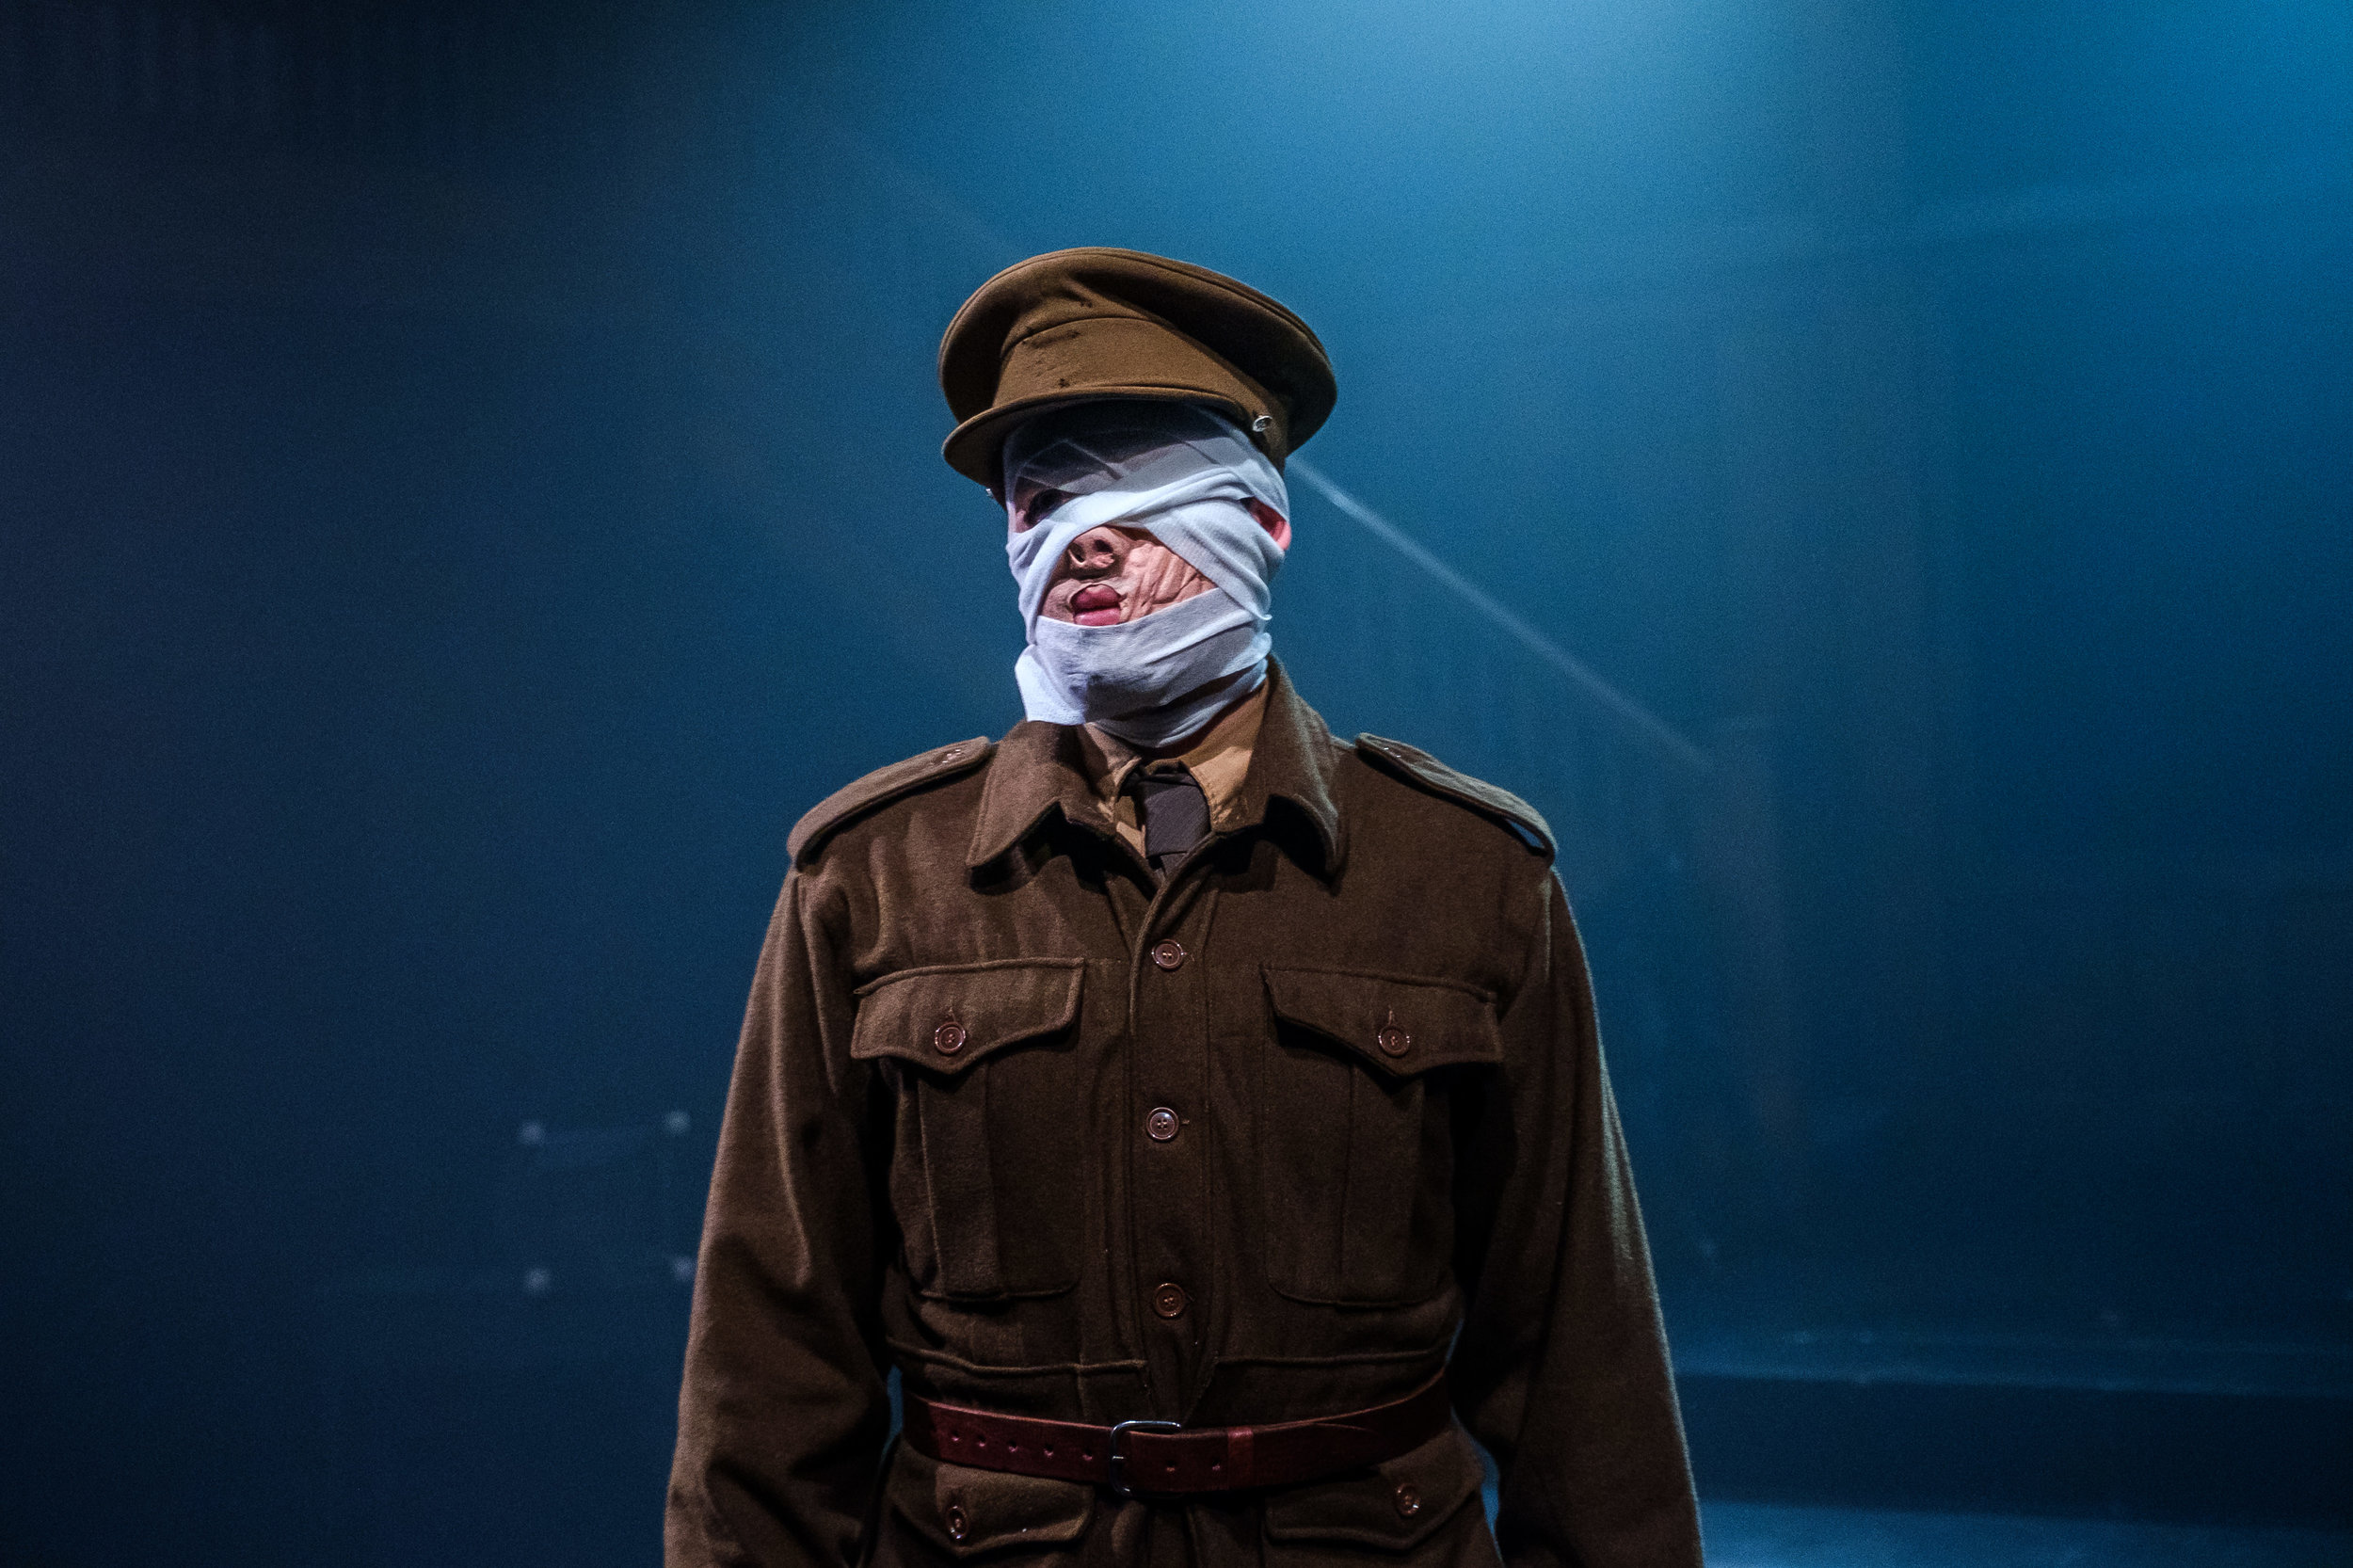 The Soldier, with bandaging